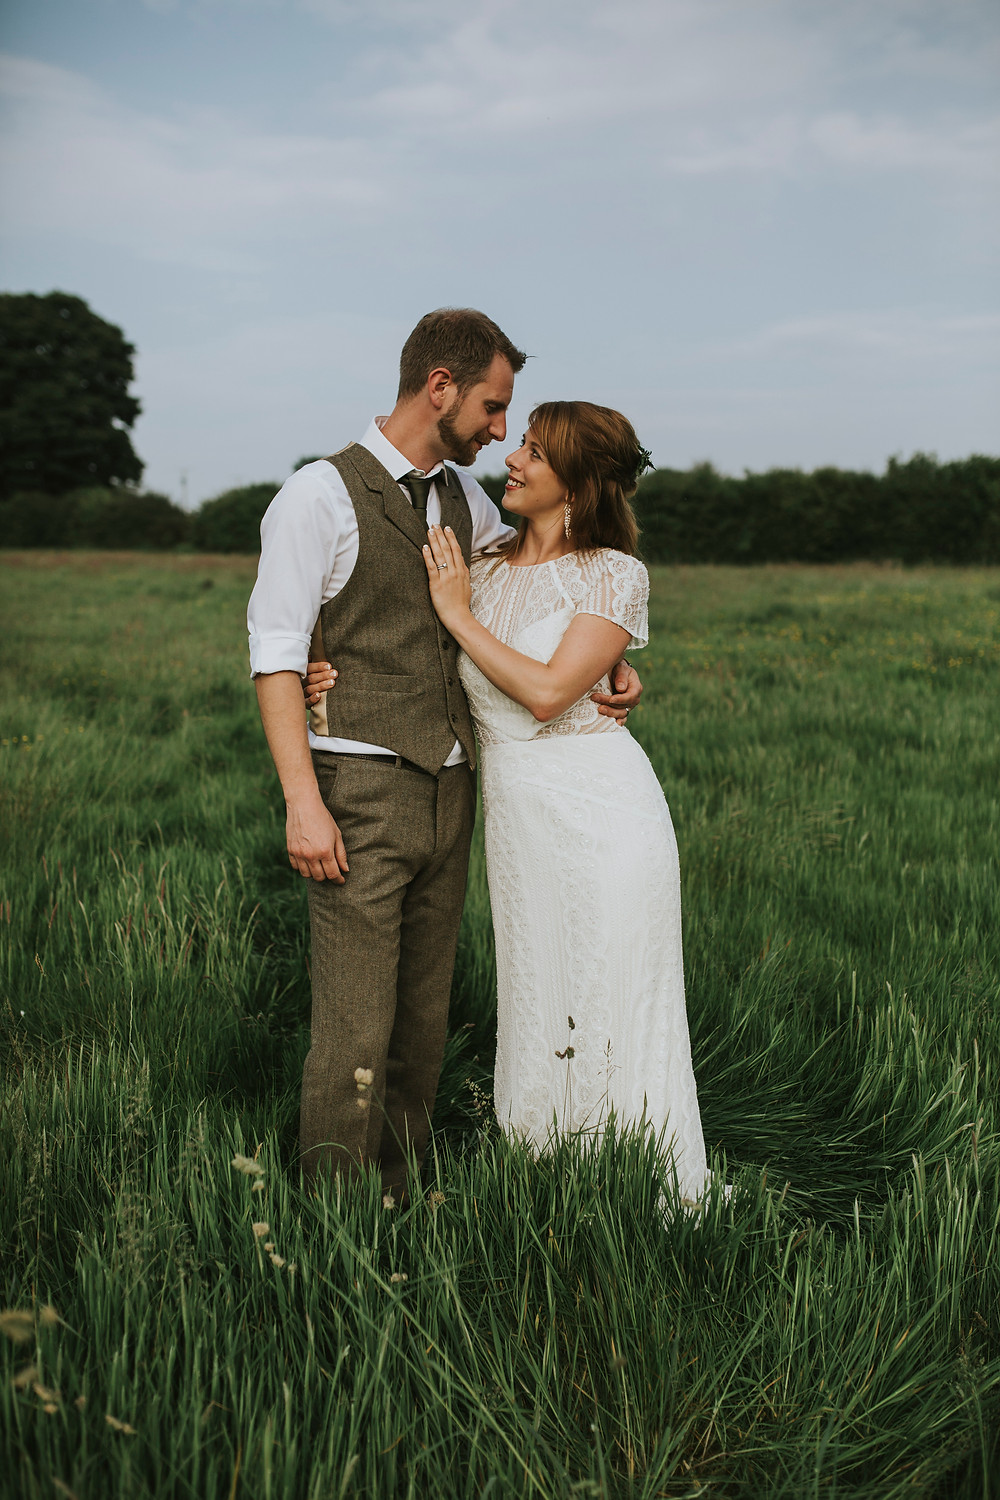 Bride and groom gazing into each others eyes in a grassy meadow. Groom is wearing a beige wool suit.